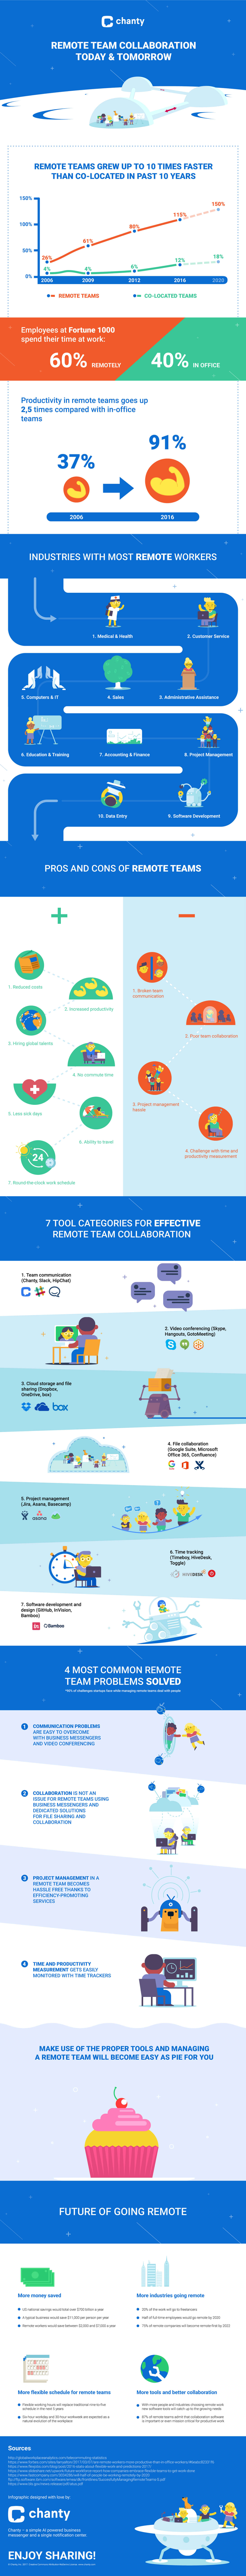 Global-Team-Collaboration-infographic-plaza